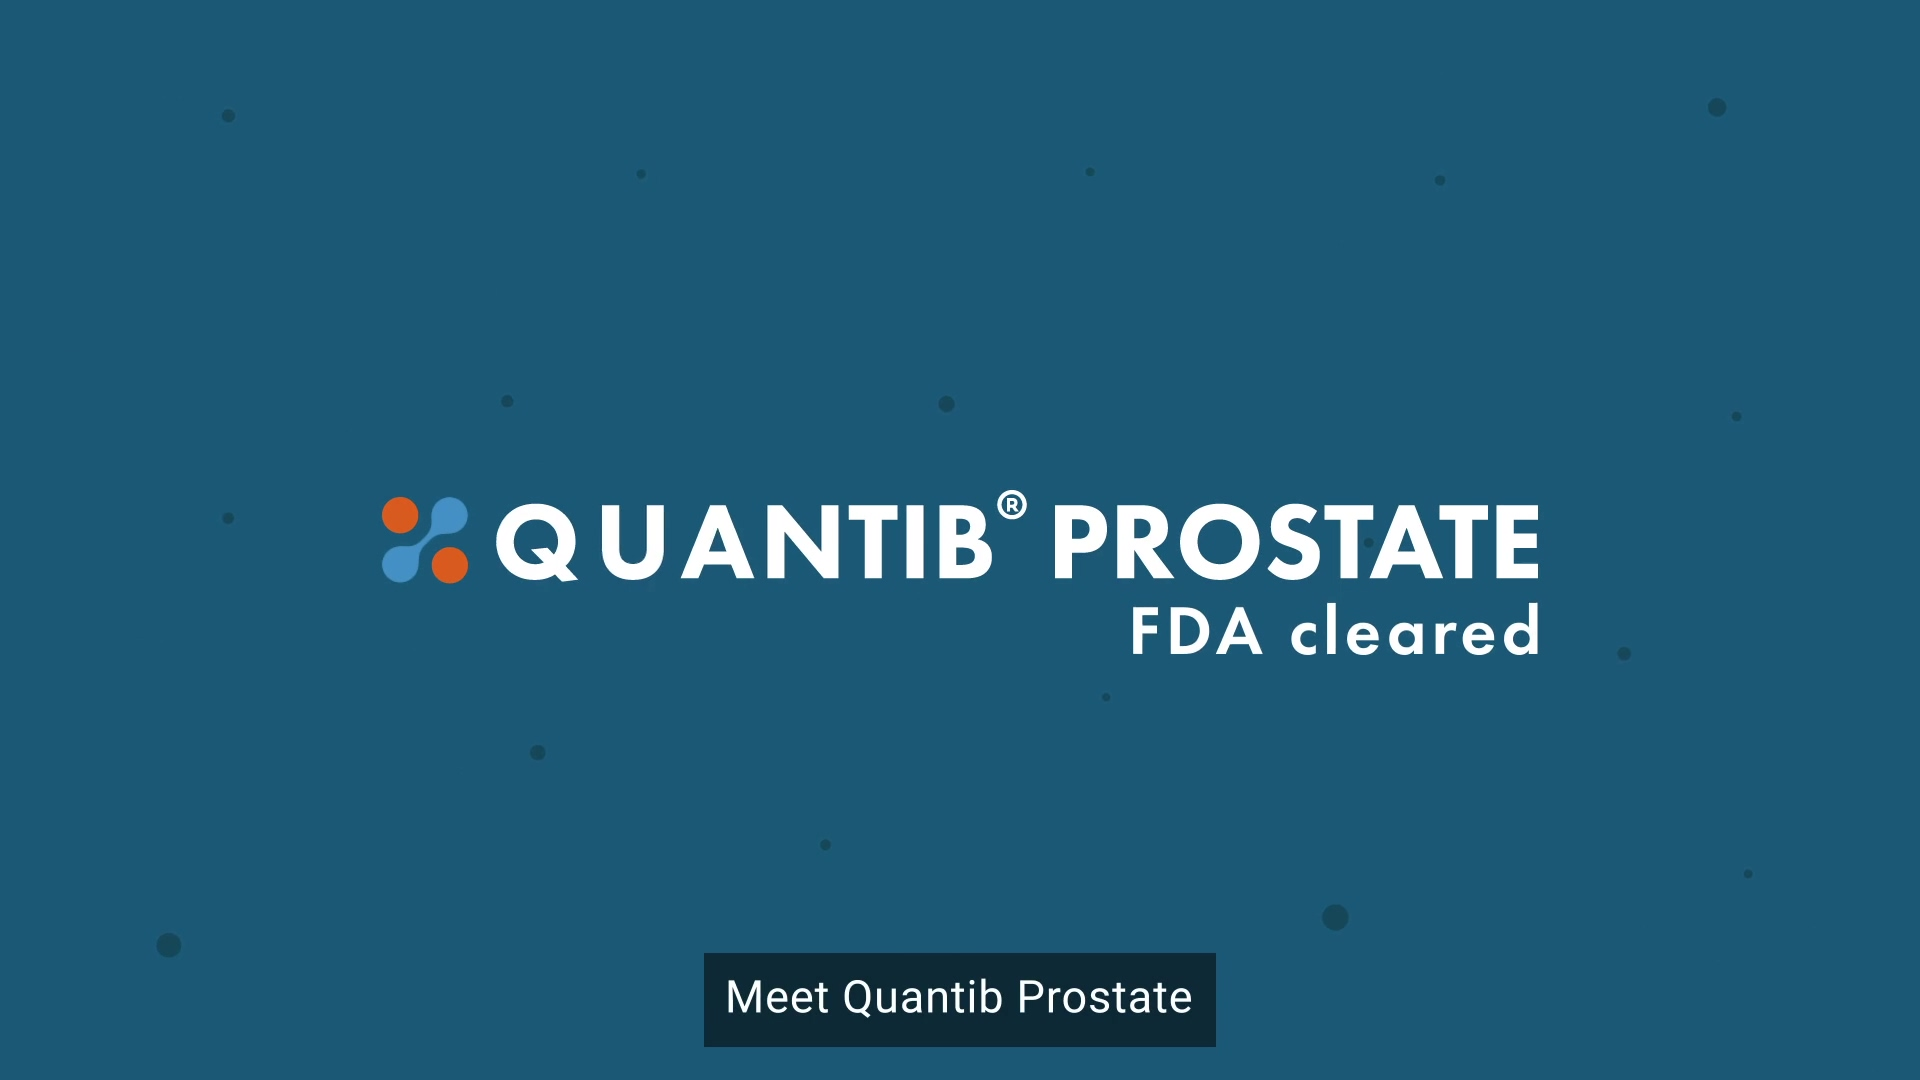 Quantib Prostate movie